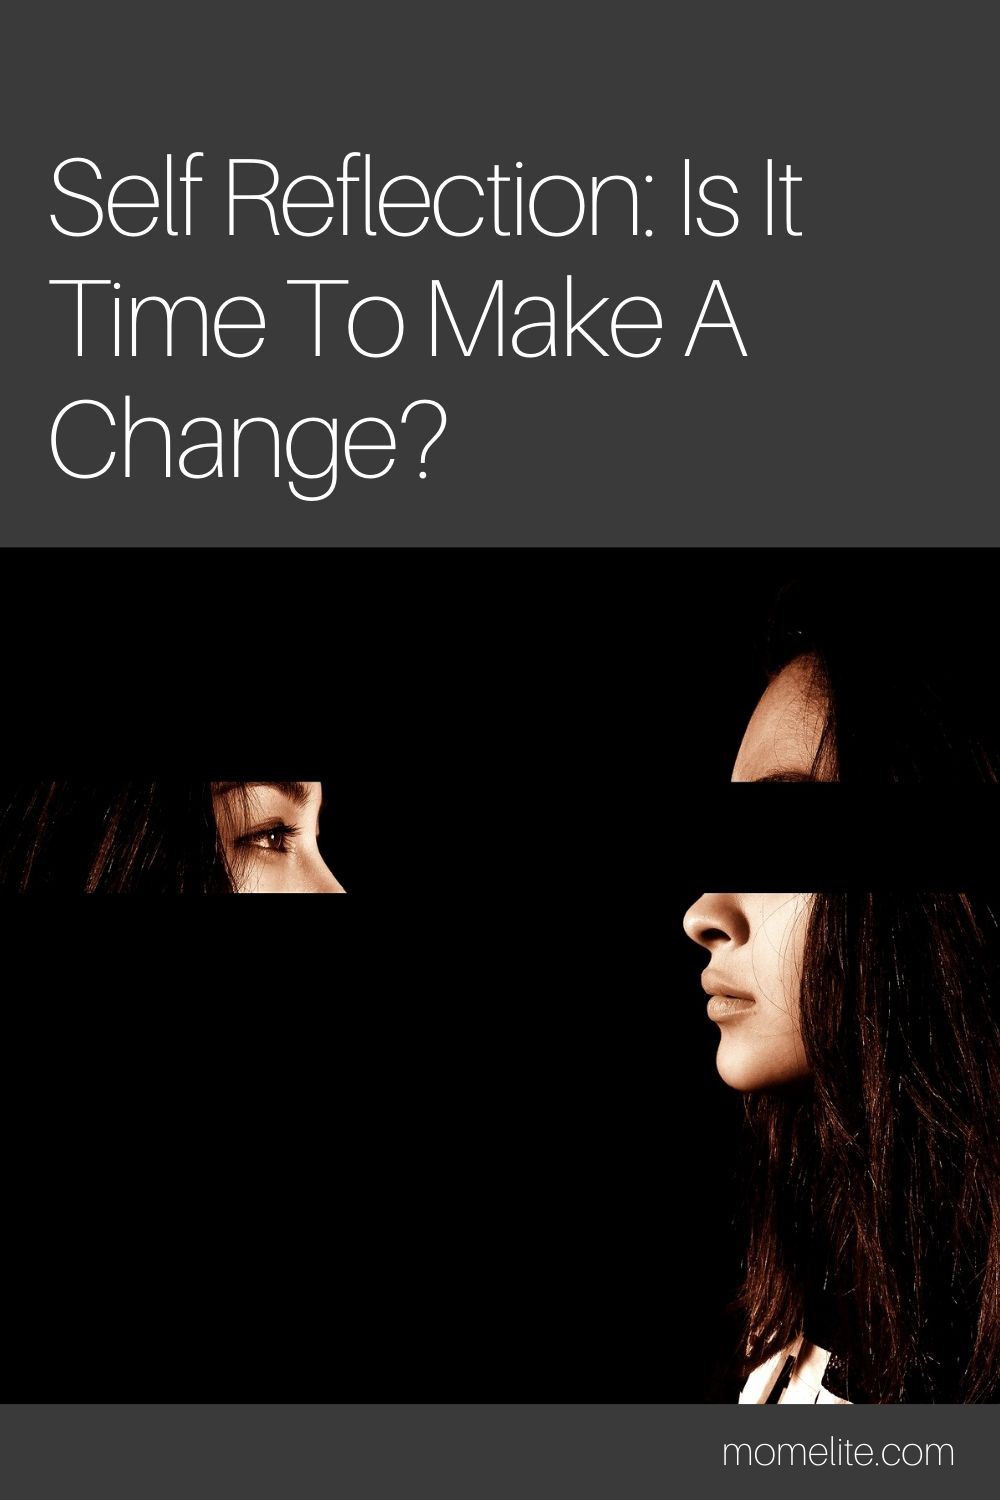 Self Reflection: Is It Time To Make A Change?